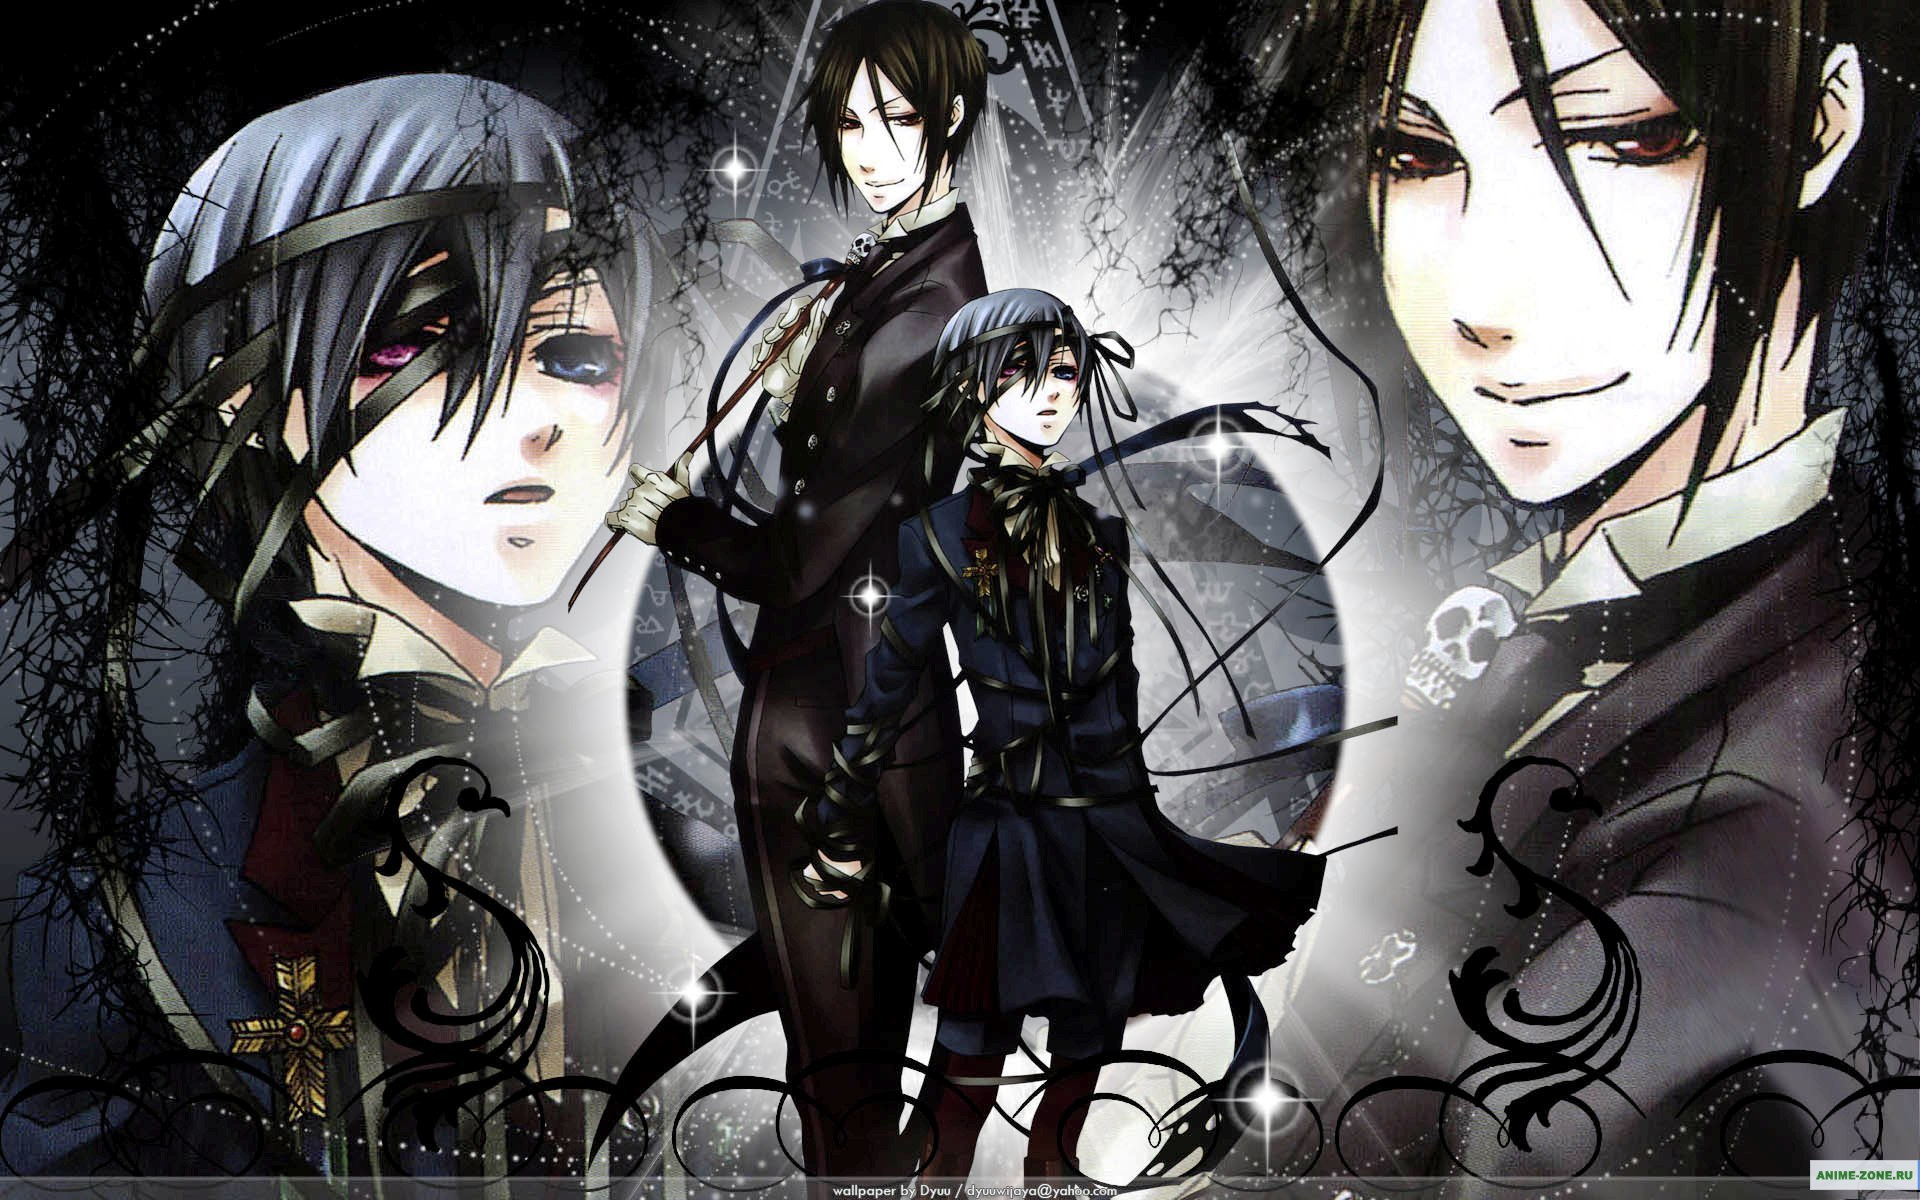 Watch black butler anime season 1 2 online free sbs - Wallpaper computer anime ...